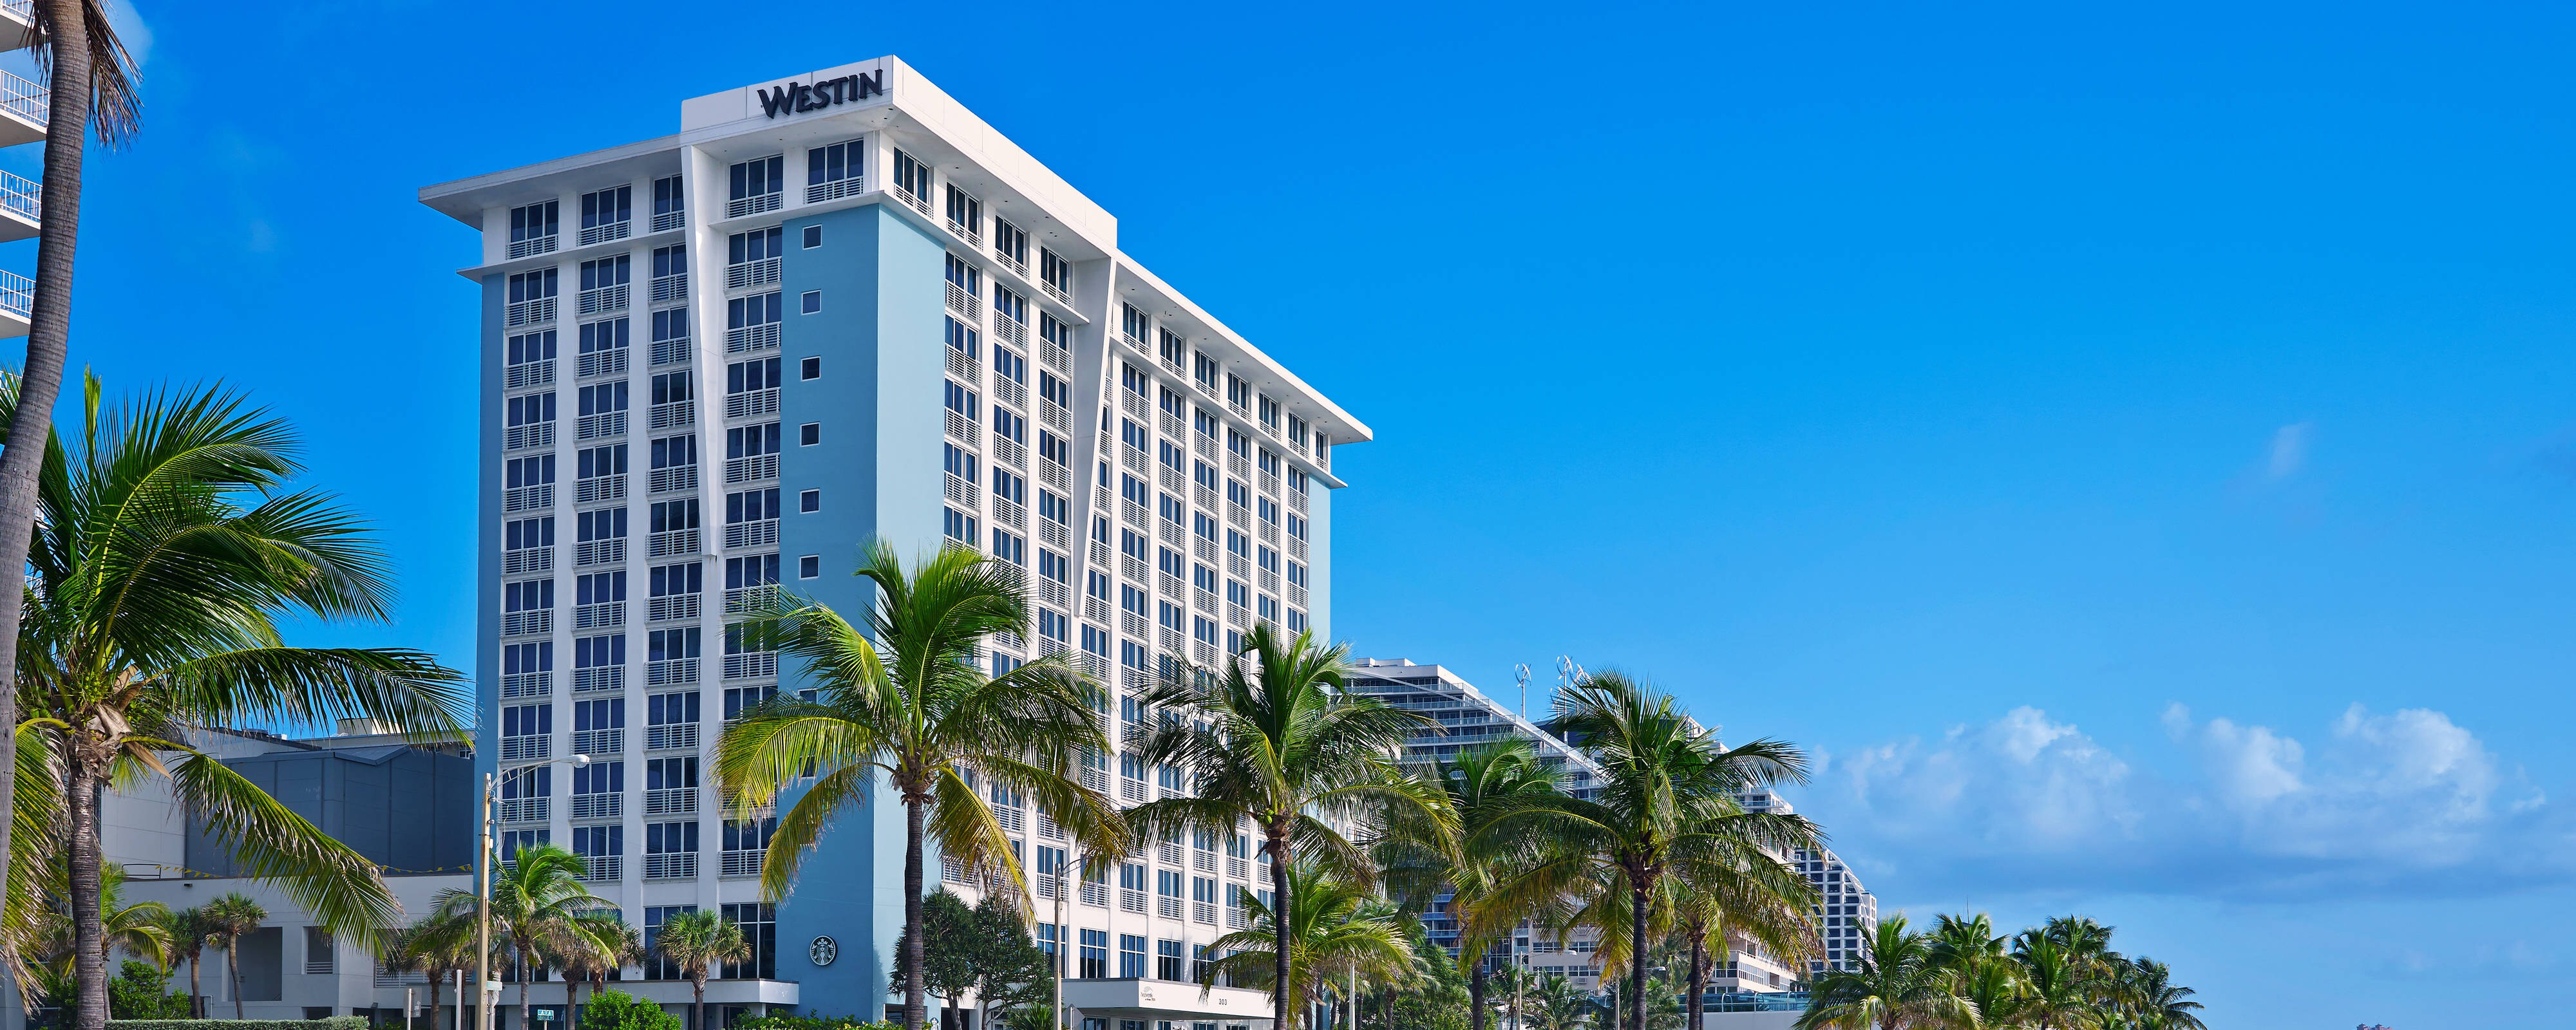 The Westin Fort Lauderdale Beach Resort Fort Lauderdale Spg